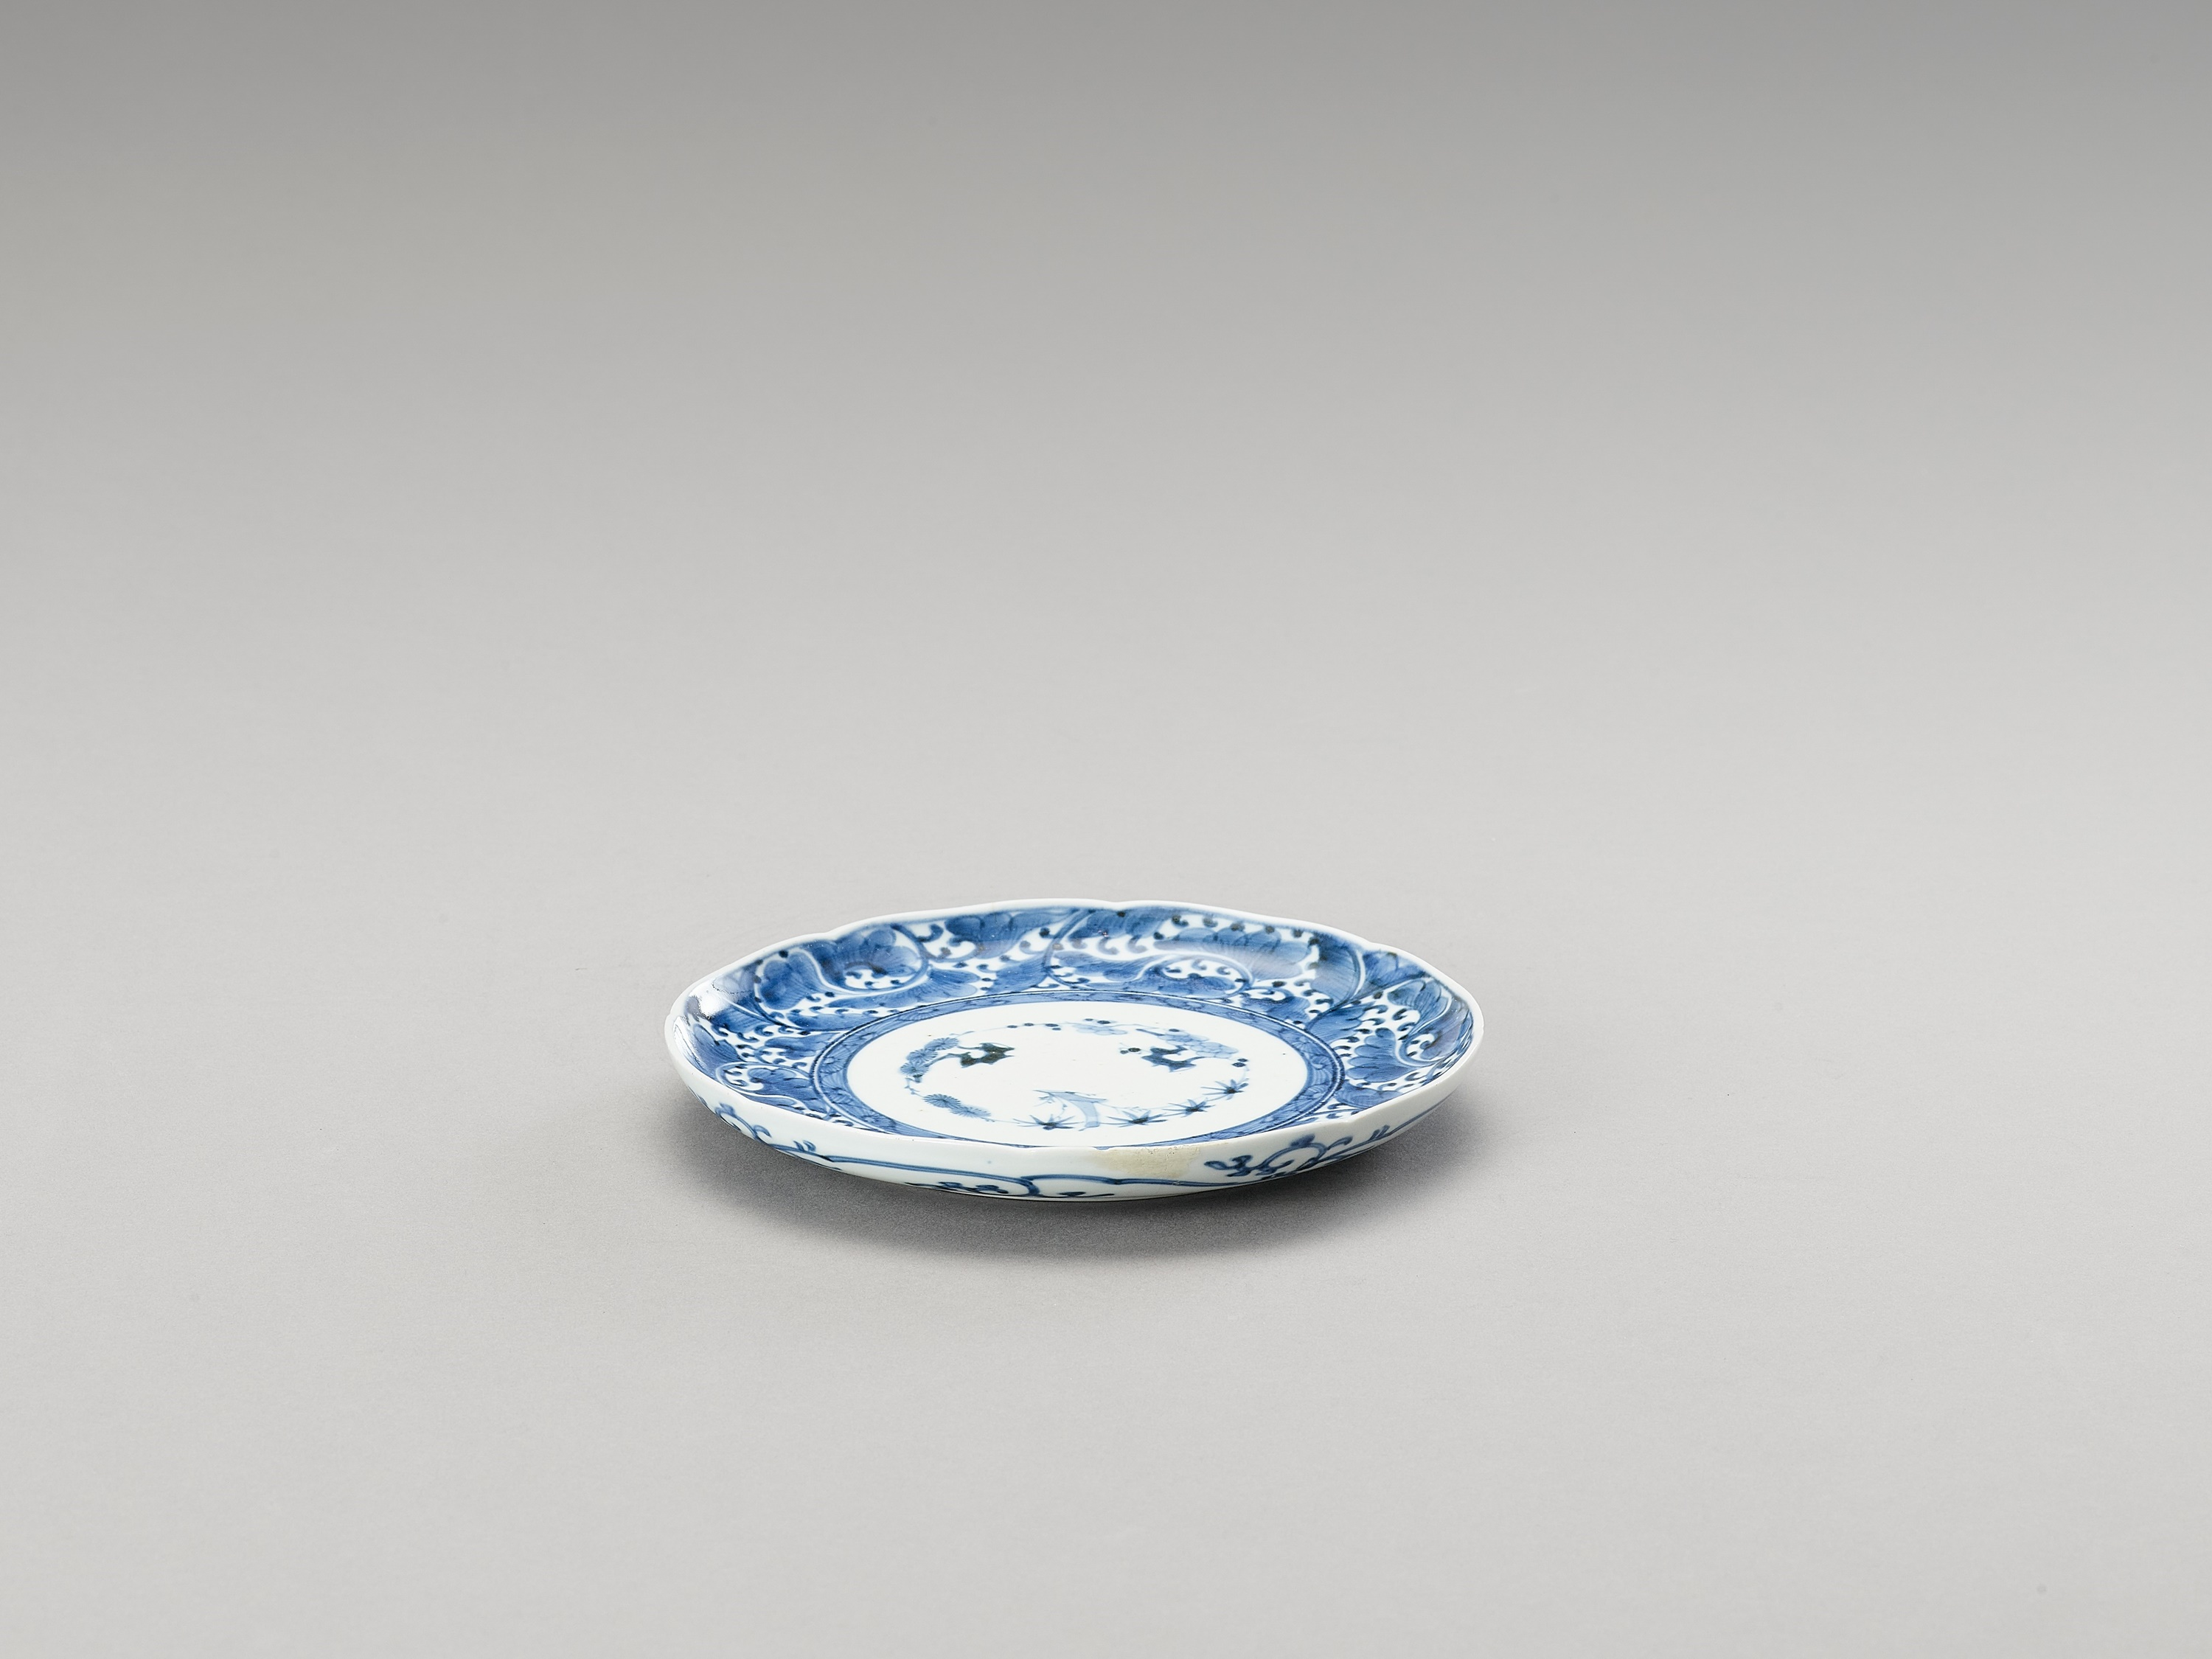 A BLUE AND WHITE ARITA PORCELAIN 'FLORAL' DISH - Image 2 of 4